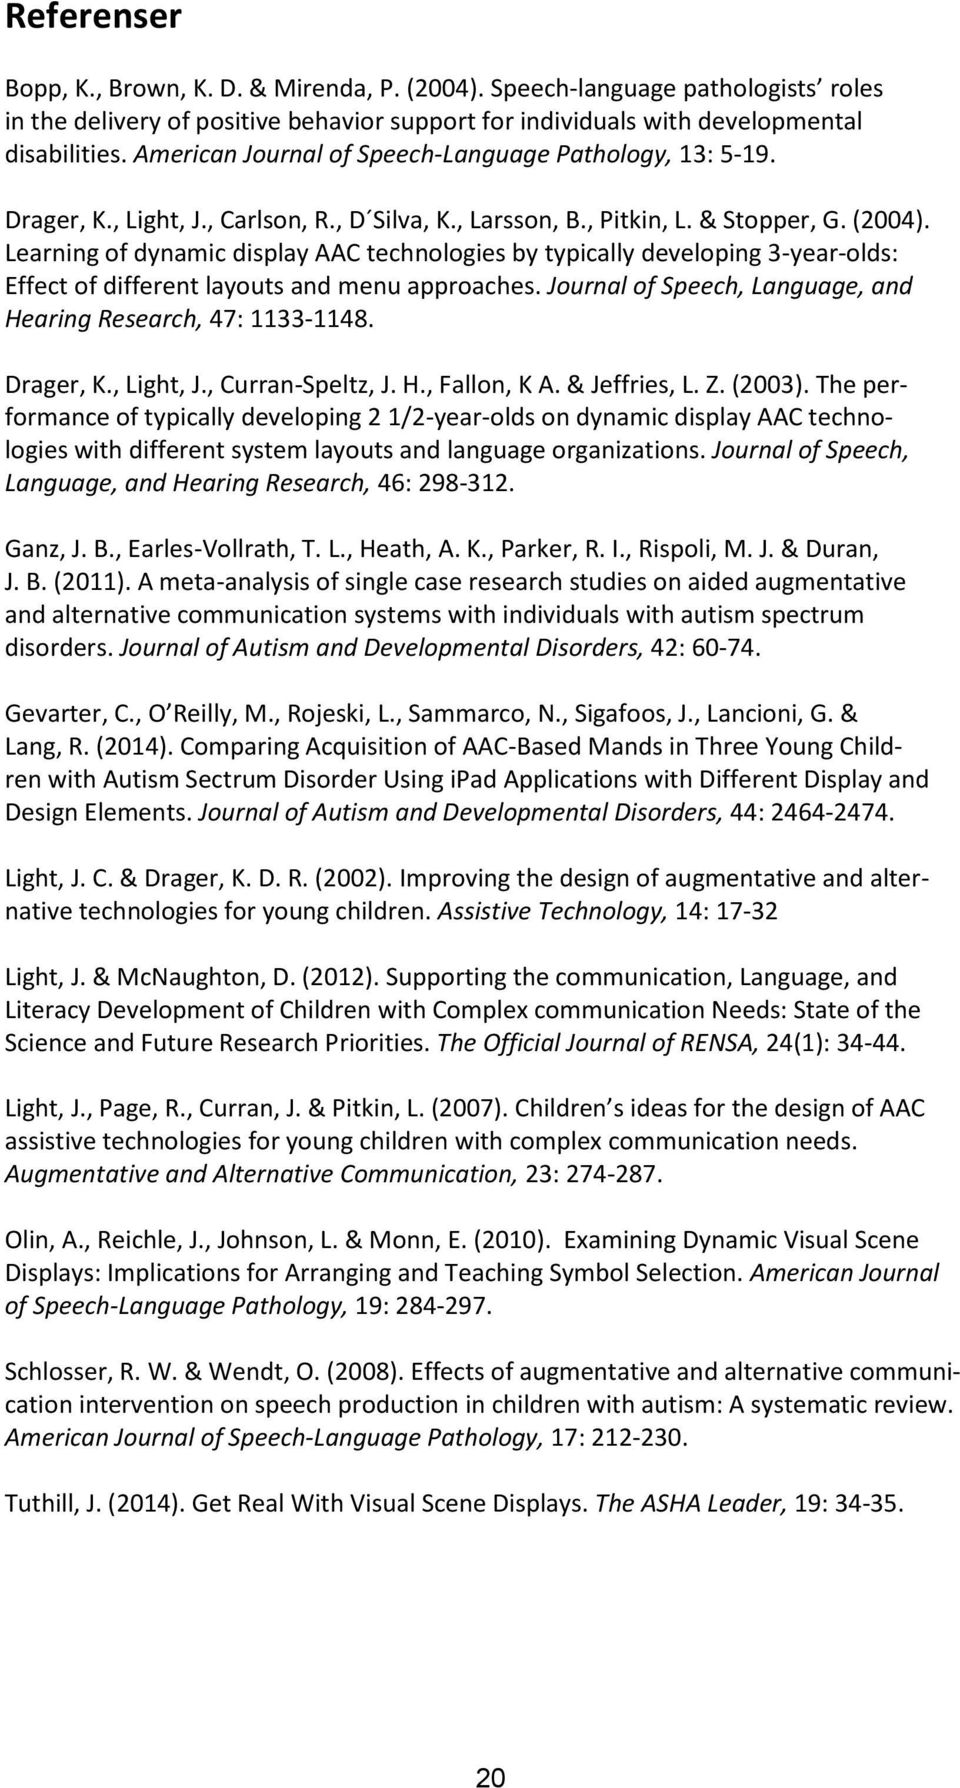 Learning of dynamic display AAC technologies by typically developing 3-year-olds: Effect of different layouts and menu approaches. Journal of Speech, Language, and Hearing Research, 47: 1133-1148.